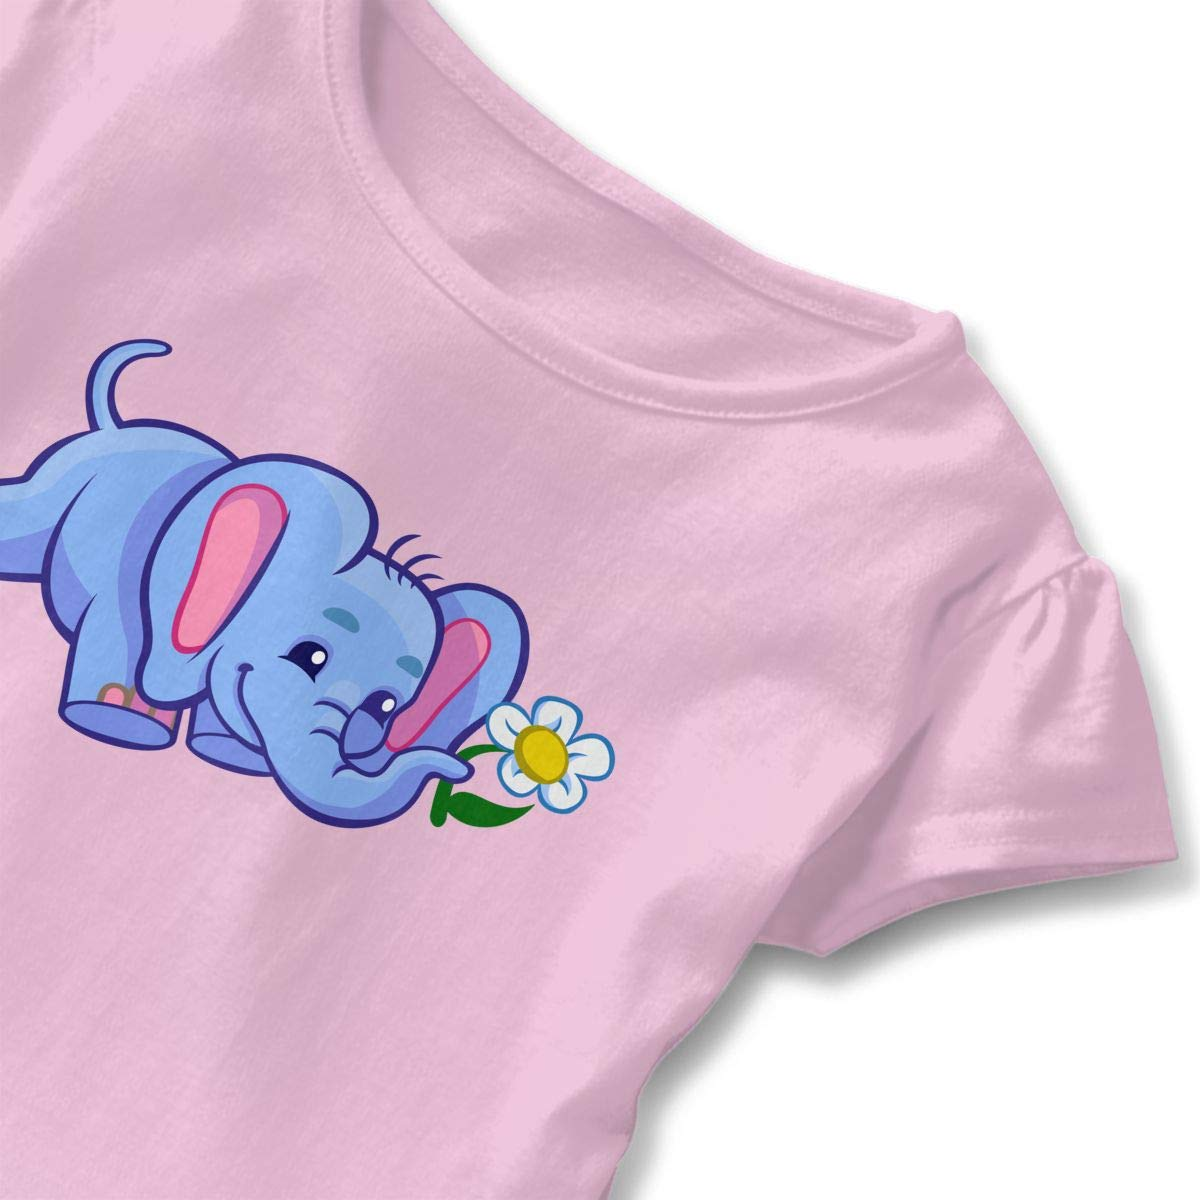 HYBDX9T Toddler Baby Girl Elephant with Flower Funny Short Sleeve Cotton T Shirts Basic Tops Tee Clothes